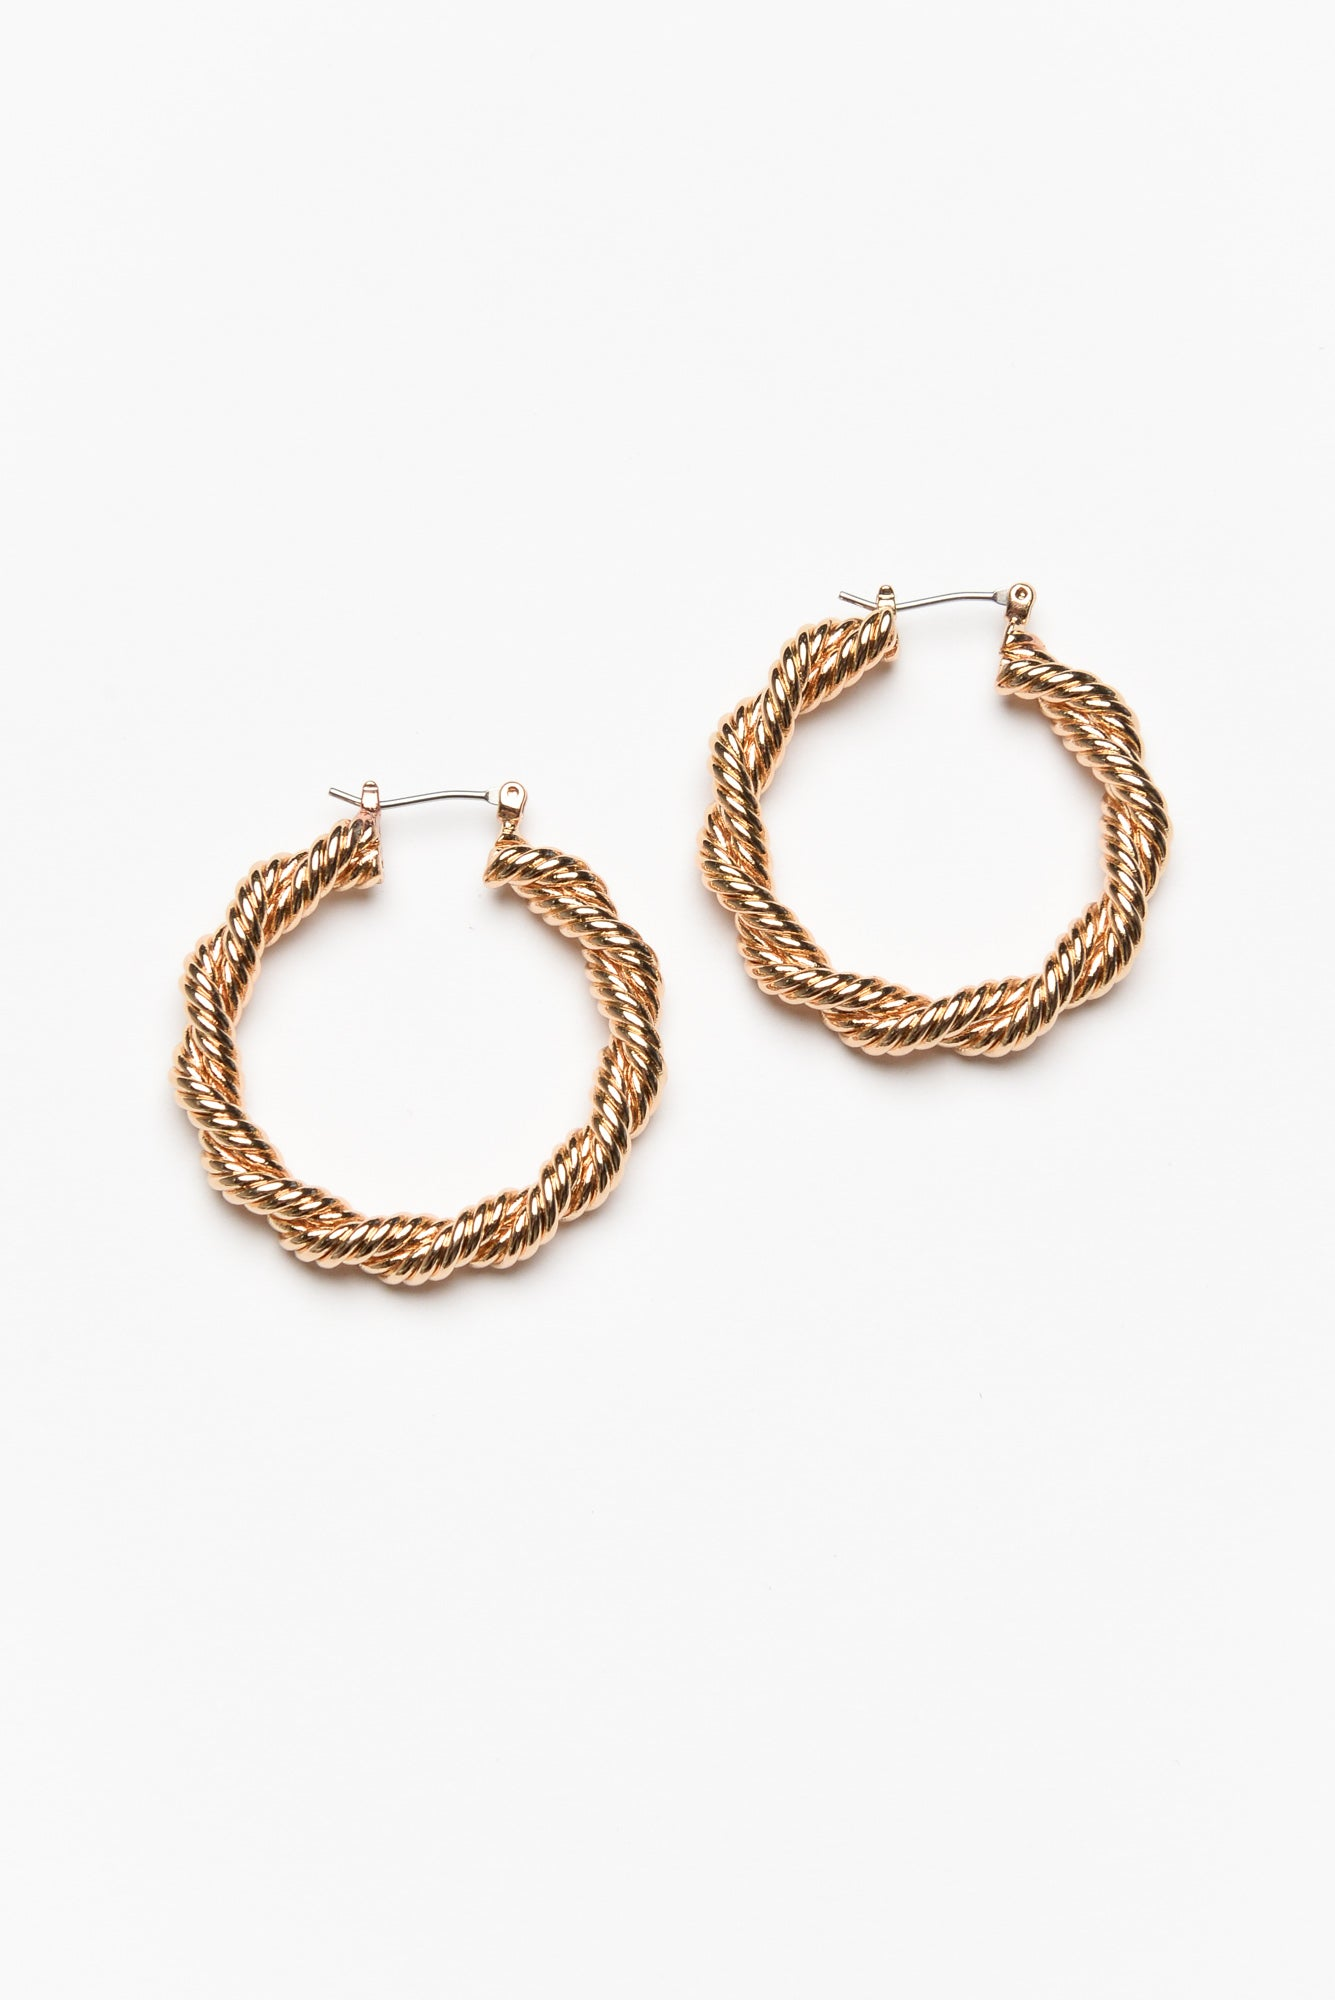 Porto Gold Double Twist Hoop Earring